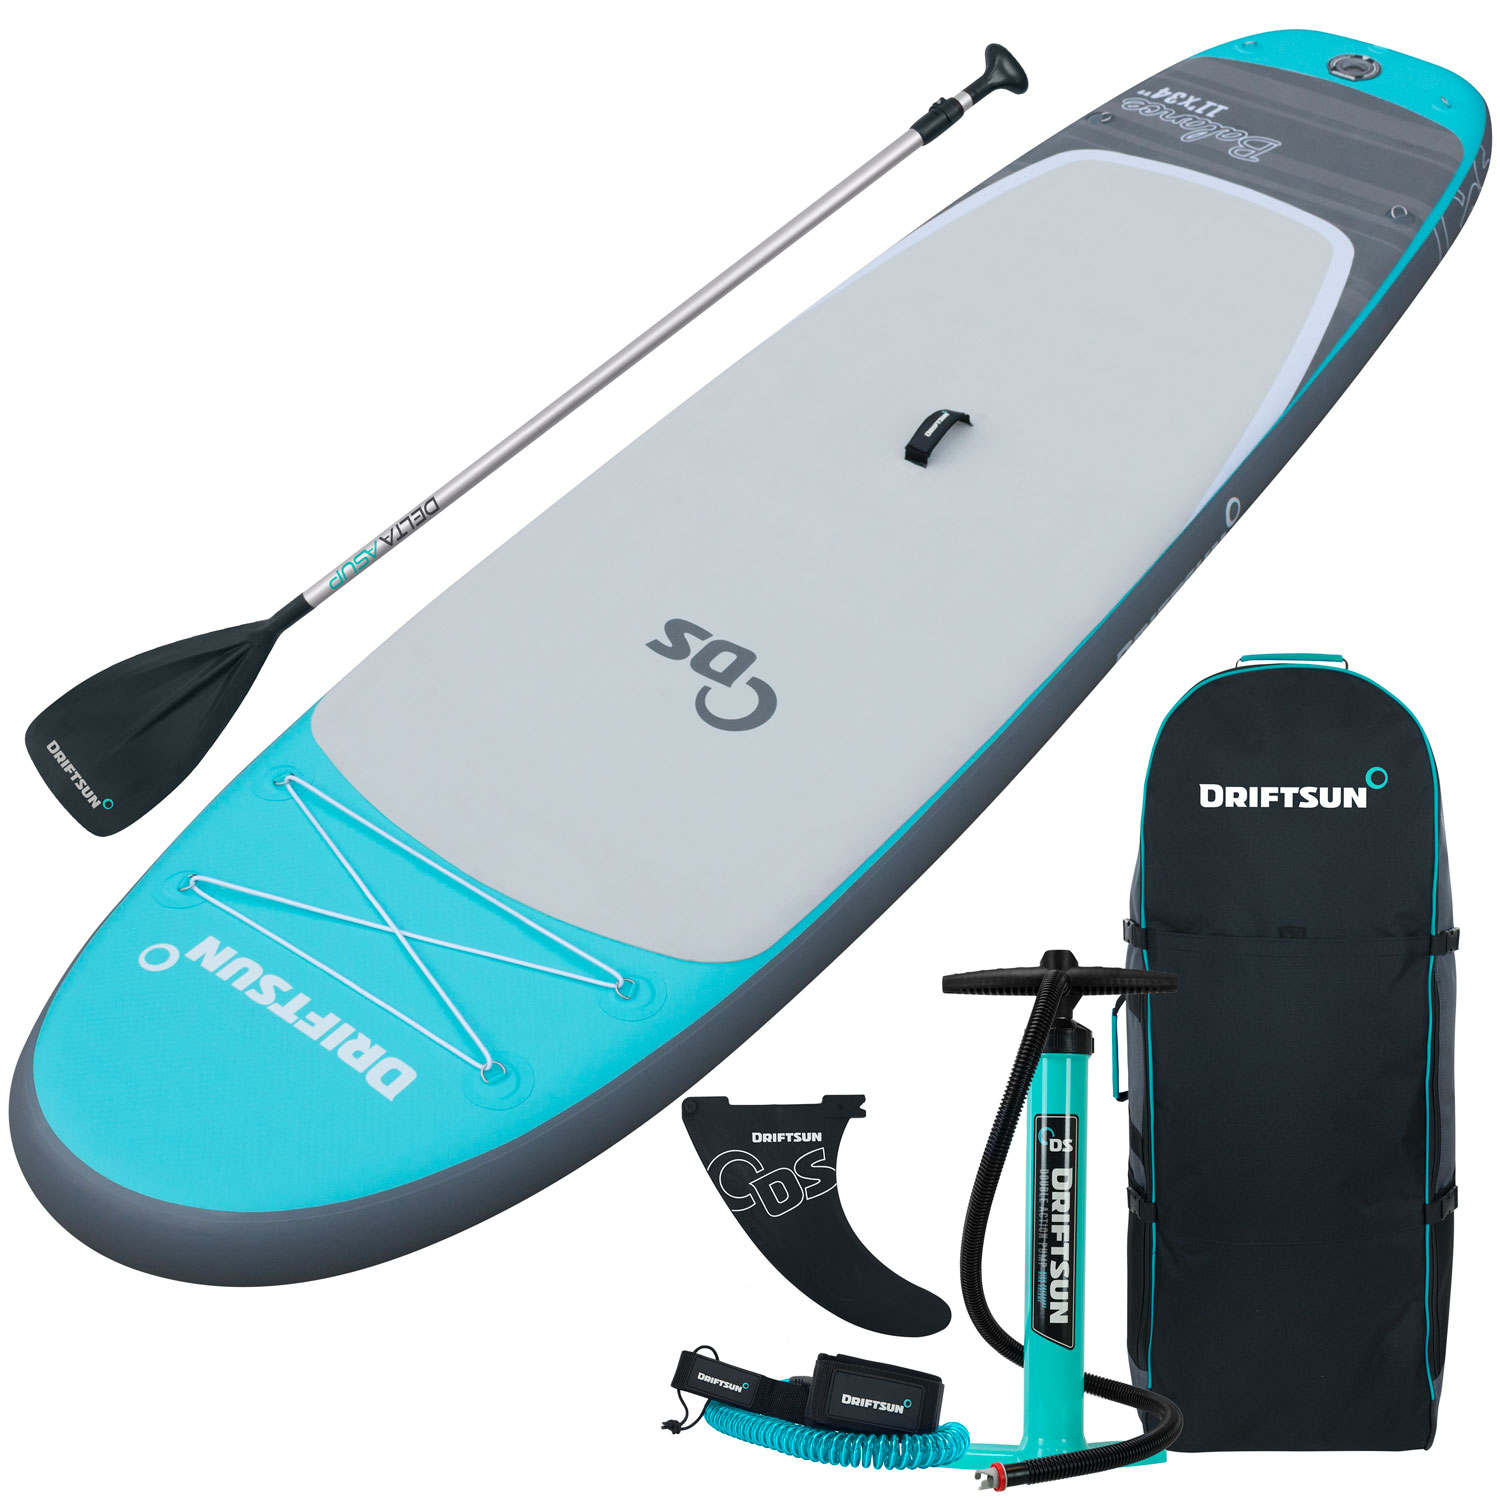 "Driftsun Balance 11' Yoga SUP Inflatable Stand Up Paddle Board | Complete Package with Travel Backpack, Adjustable Paddle, Coil Leash - 11' Feet x 34"" Inch"